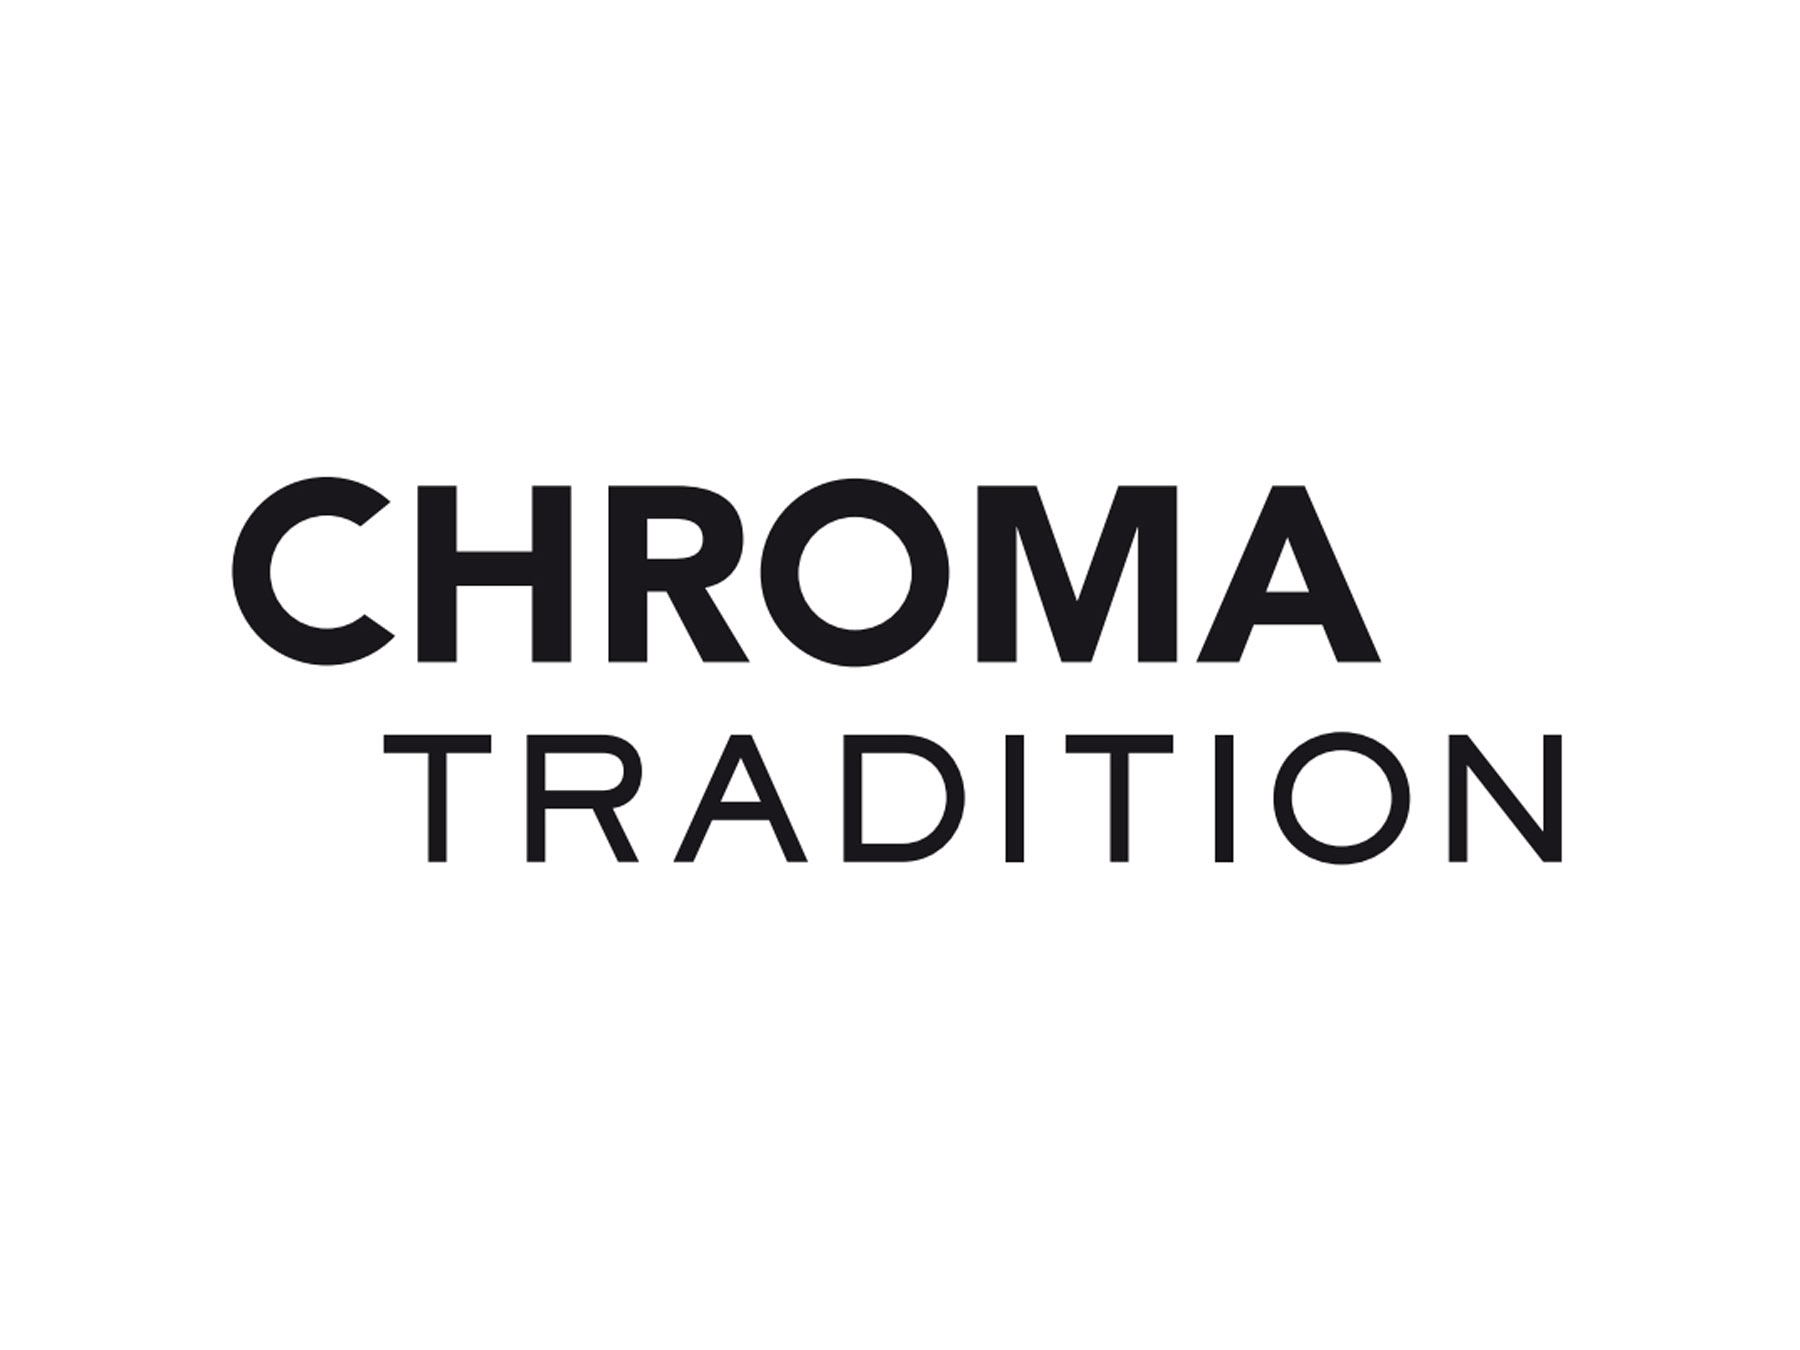 Chroma Tradition T06 Kochmesser 19,8 cm